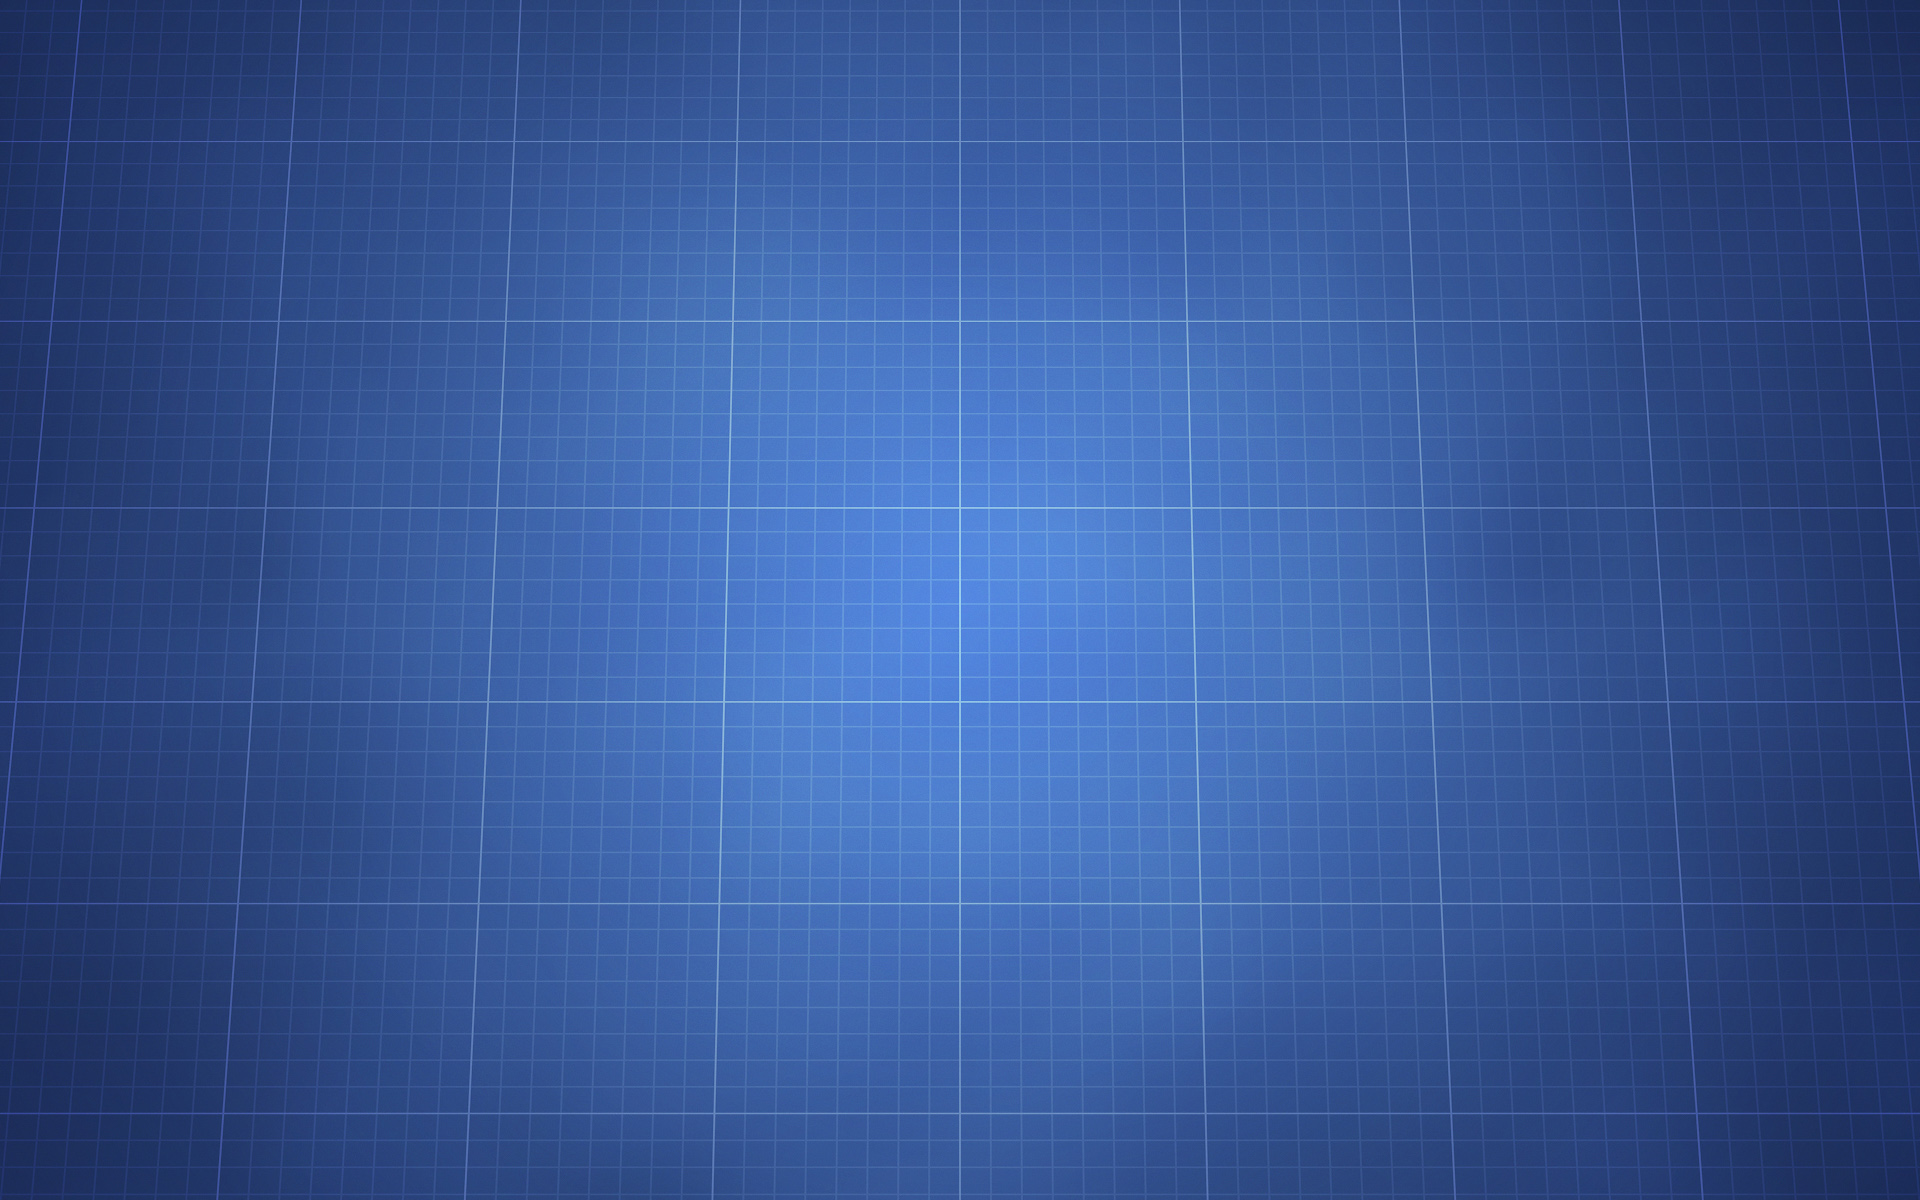 blue minimalistic pattern grid backgrounds hd wallpaper